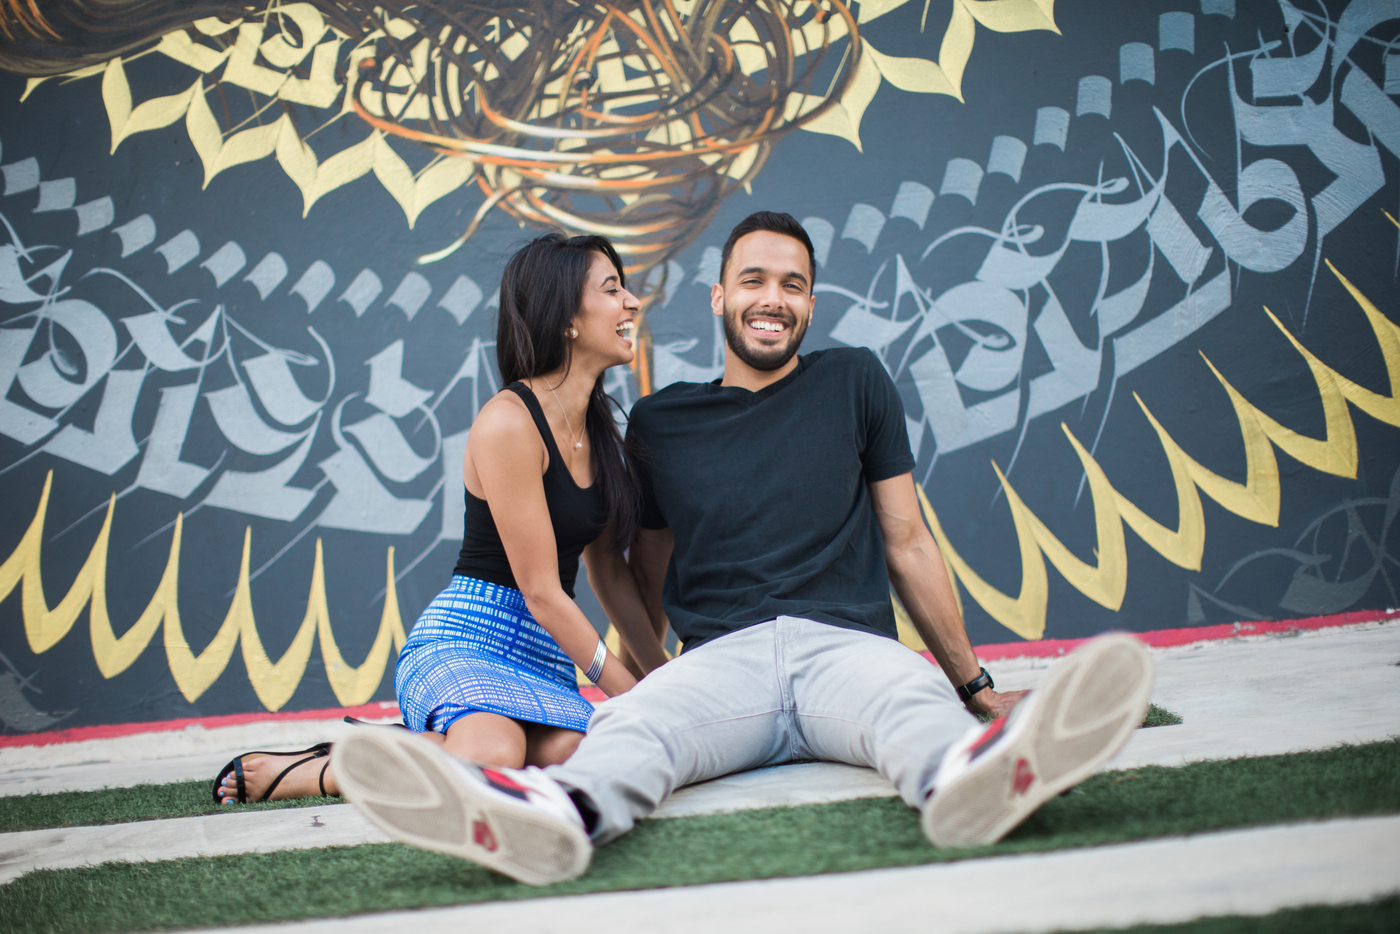 miami engagement locations creative